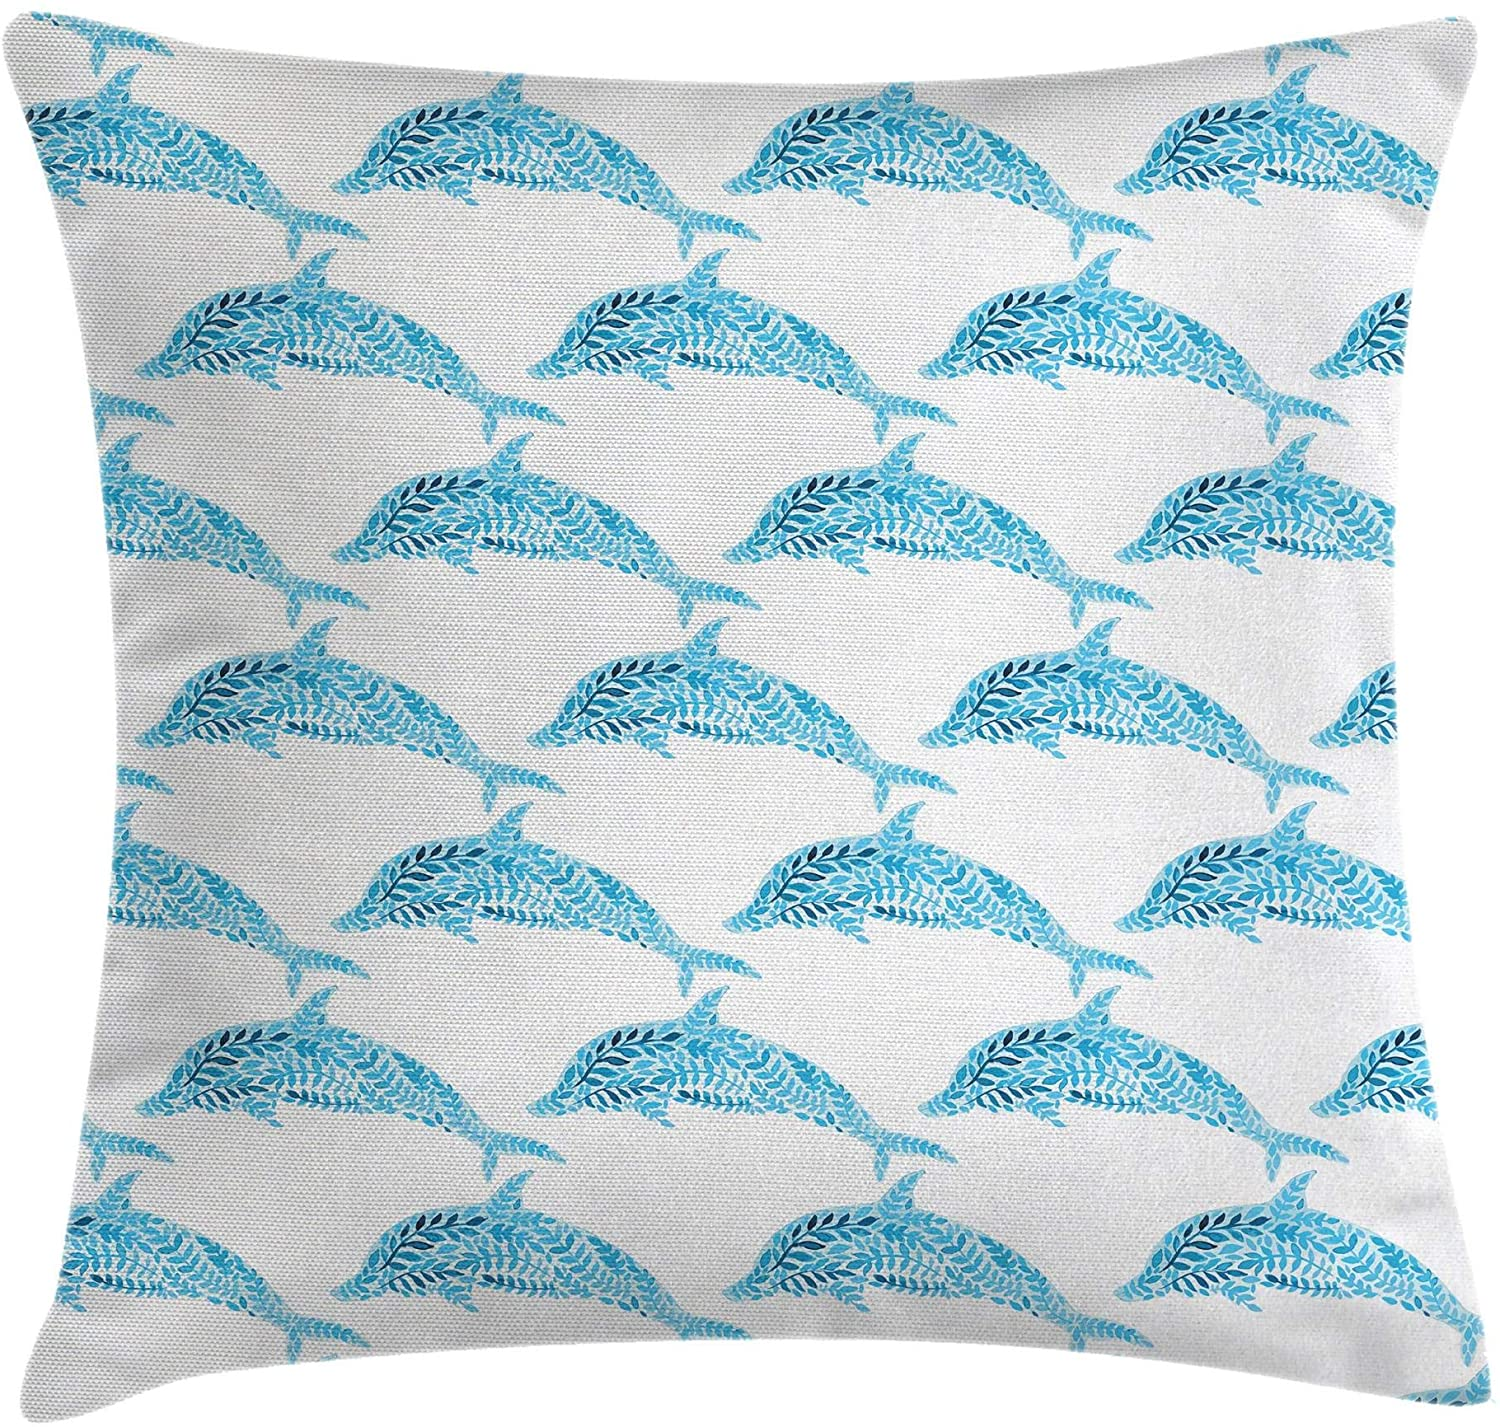 Ambesonne Sea Animals Throw Pillow Cushion Cover, Aquatic Dolphin with Leaf Ornamentals Abstract Artwork Playful Fish, Decorative Square Accent Pillow Case, 18